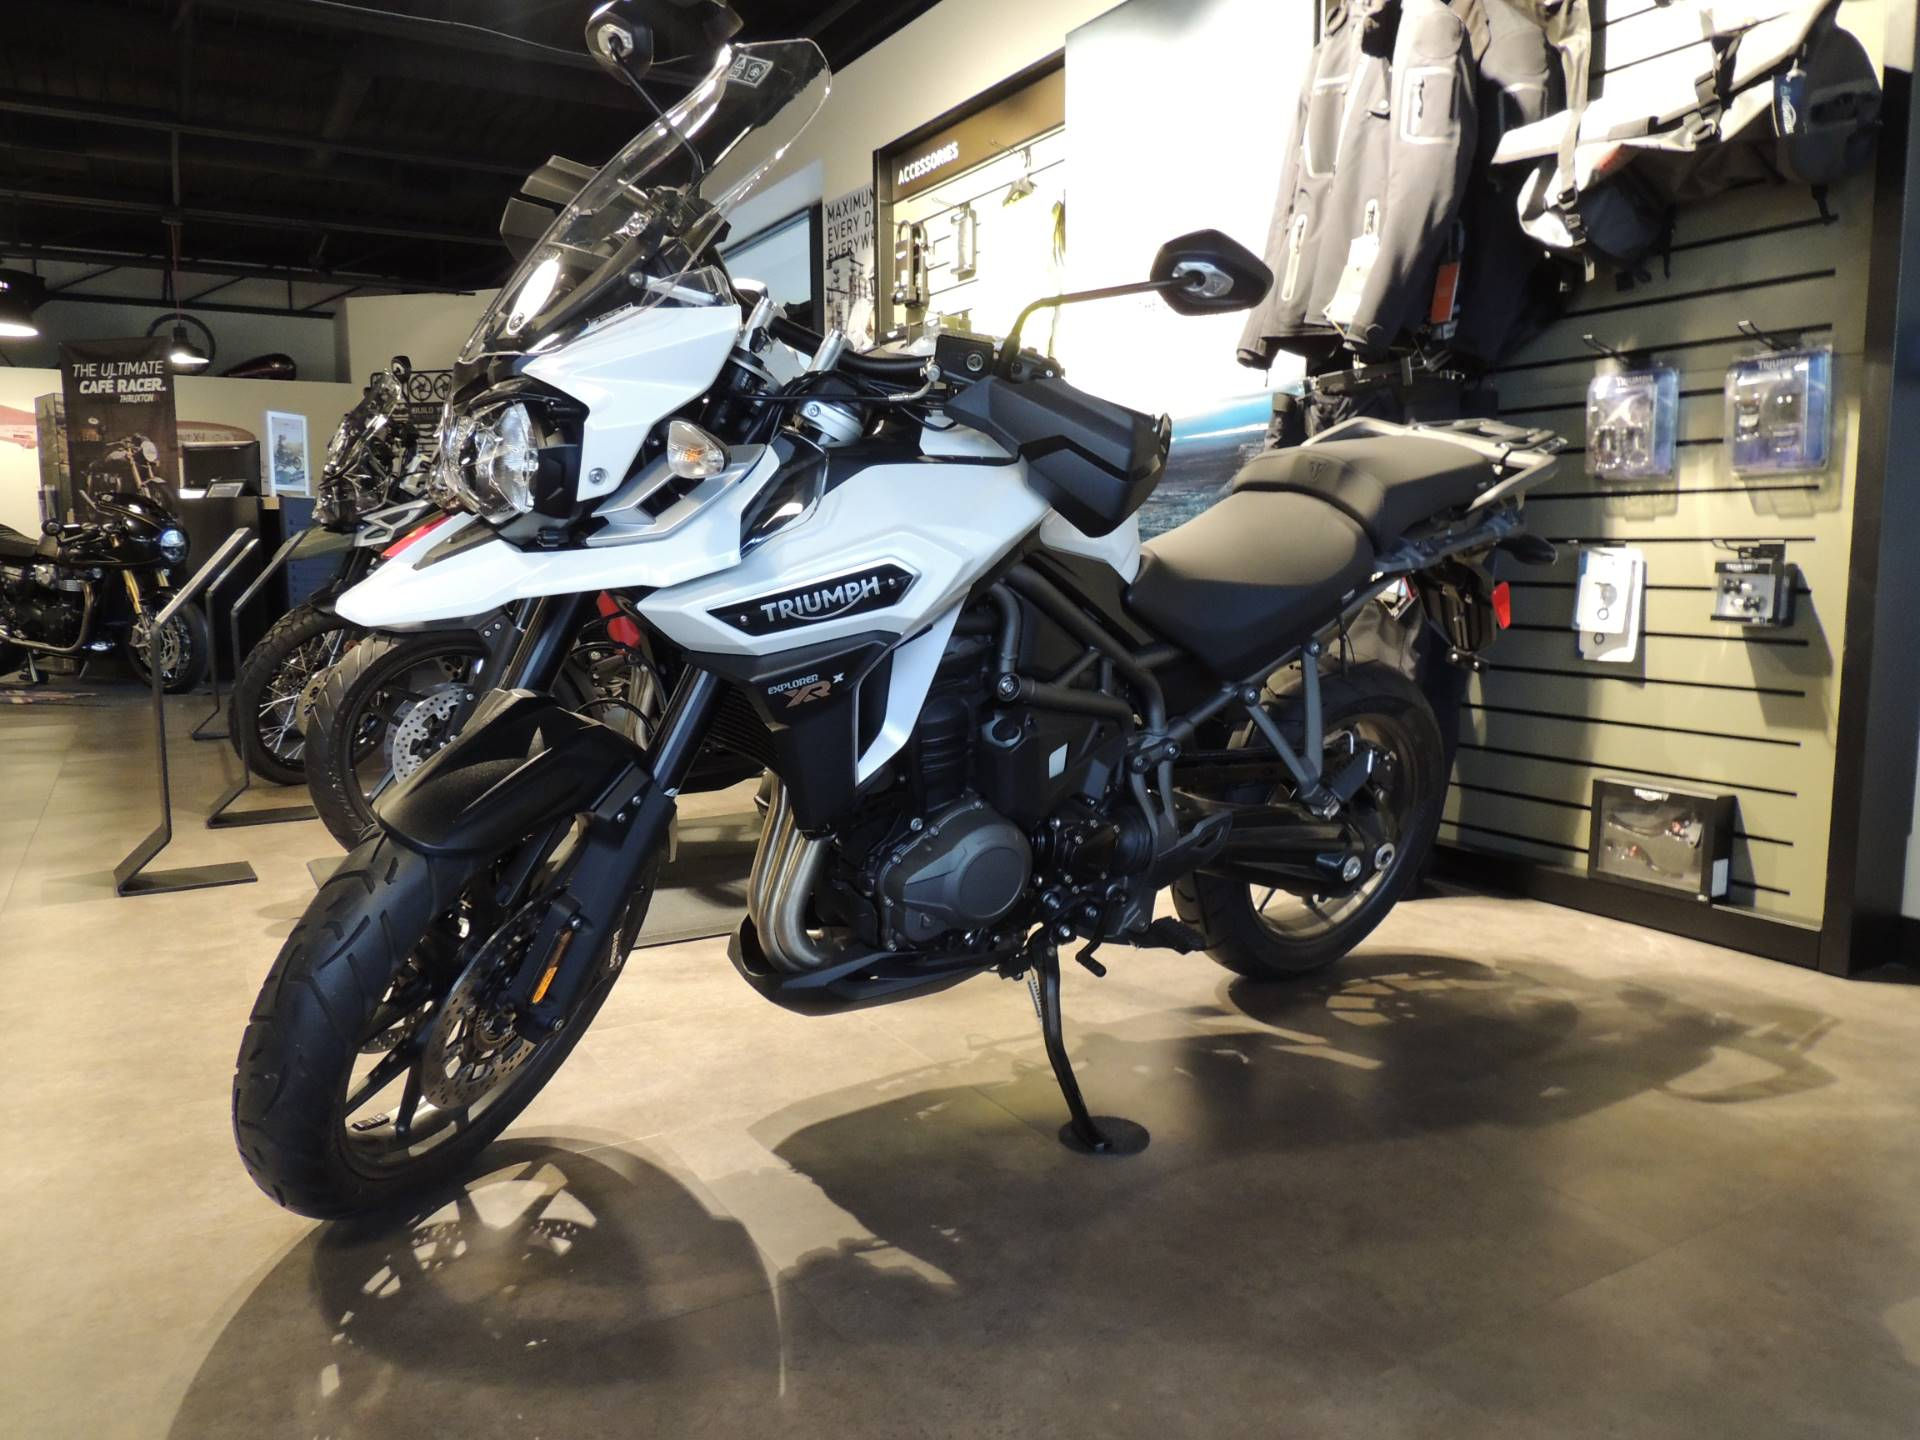 2017 Triumph Tiger Explorer XRx Low in Shelby Township, Michigan - Photo 2